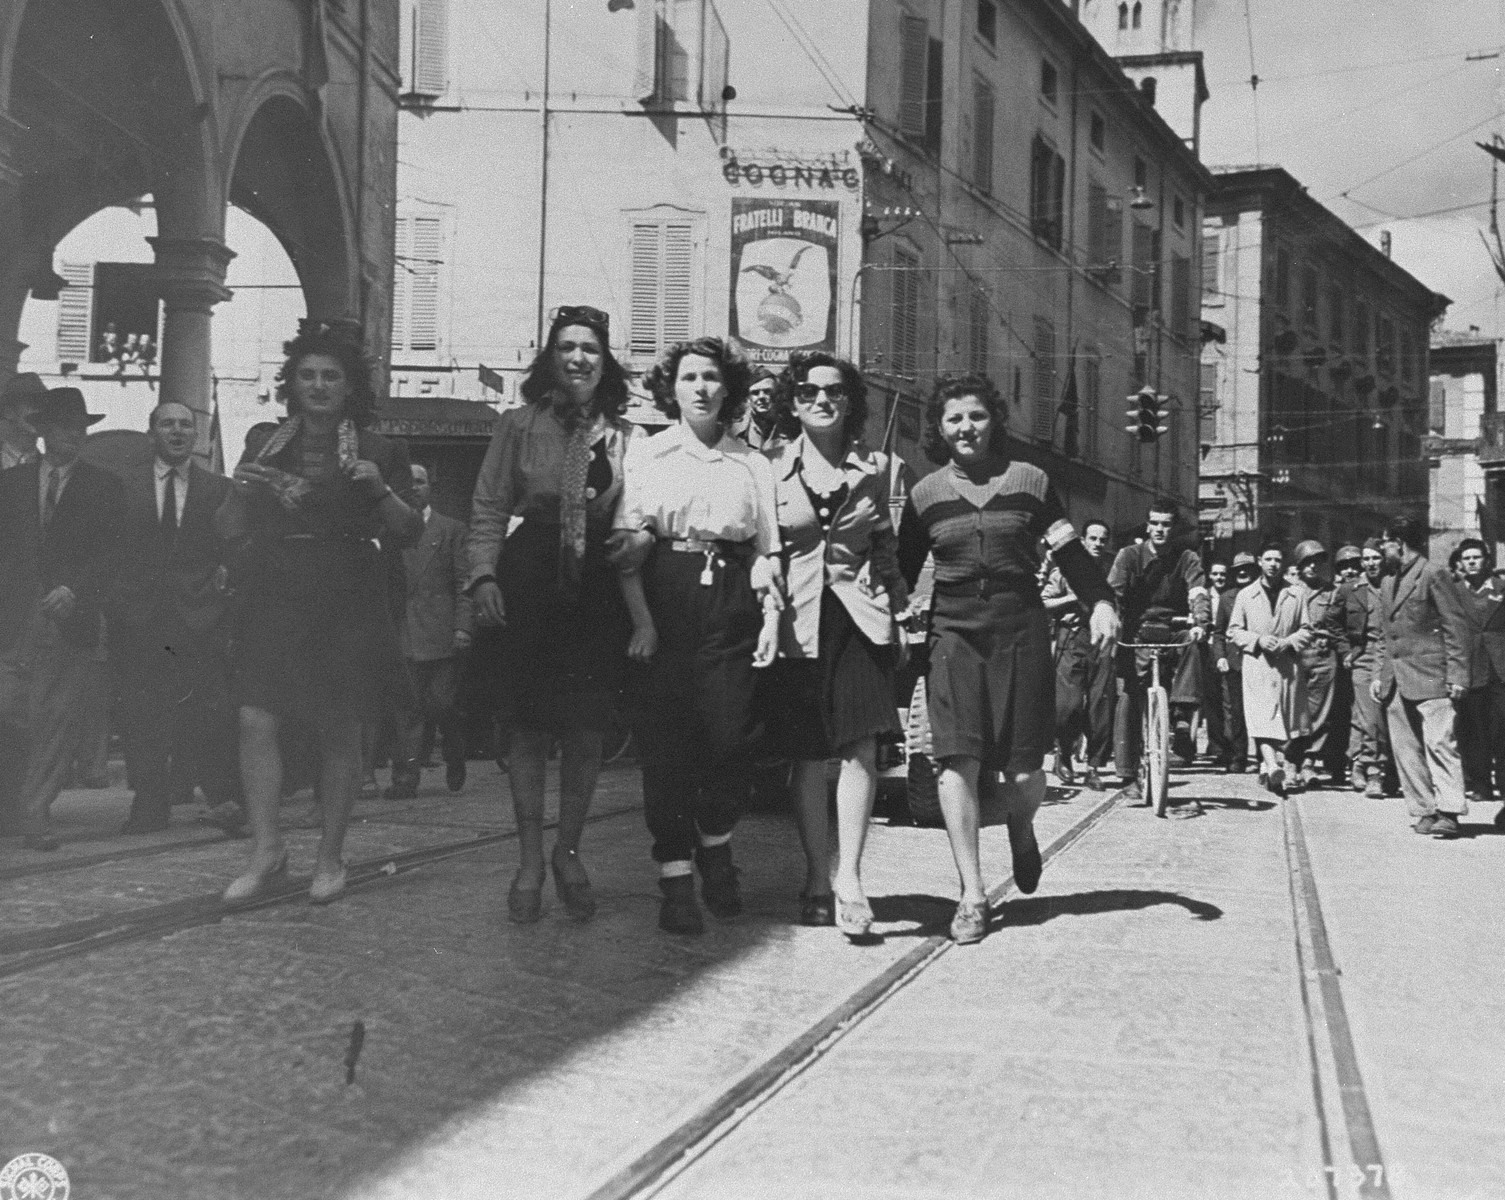 A woman accused of collaborating with the Germans is paraded through the streets of Modena by women members of the resistance.